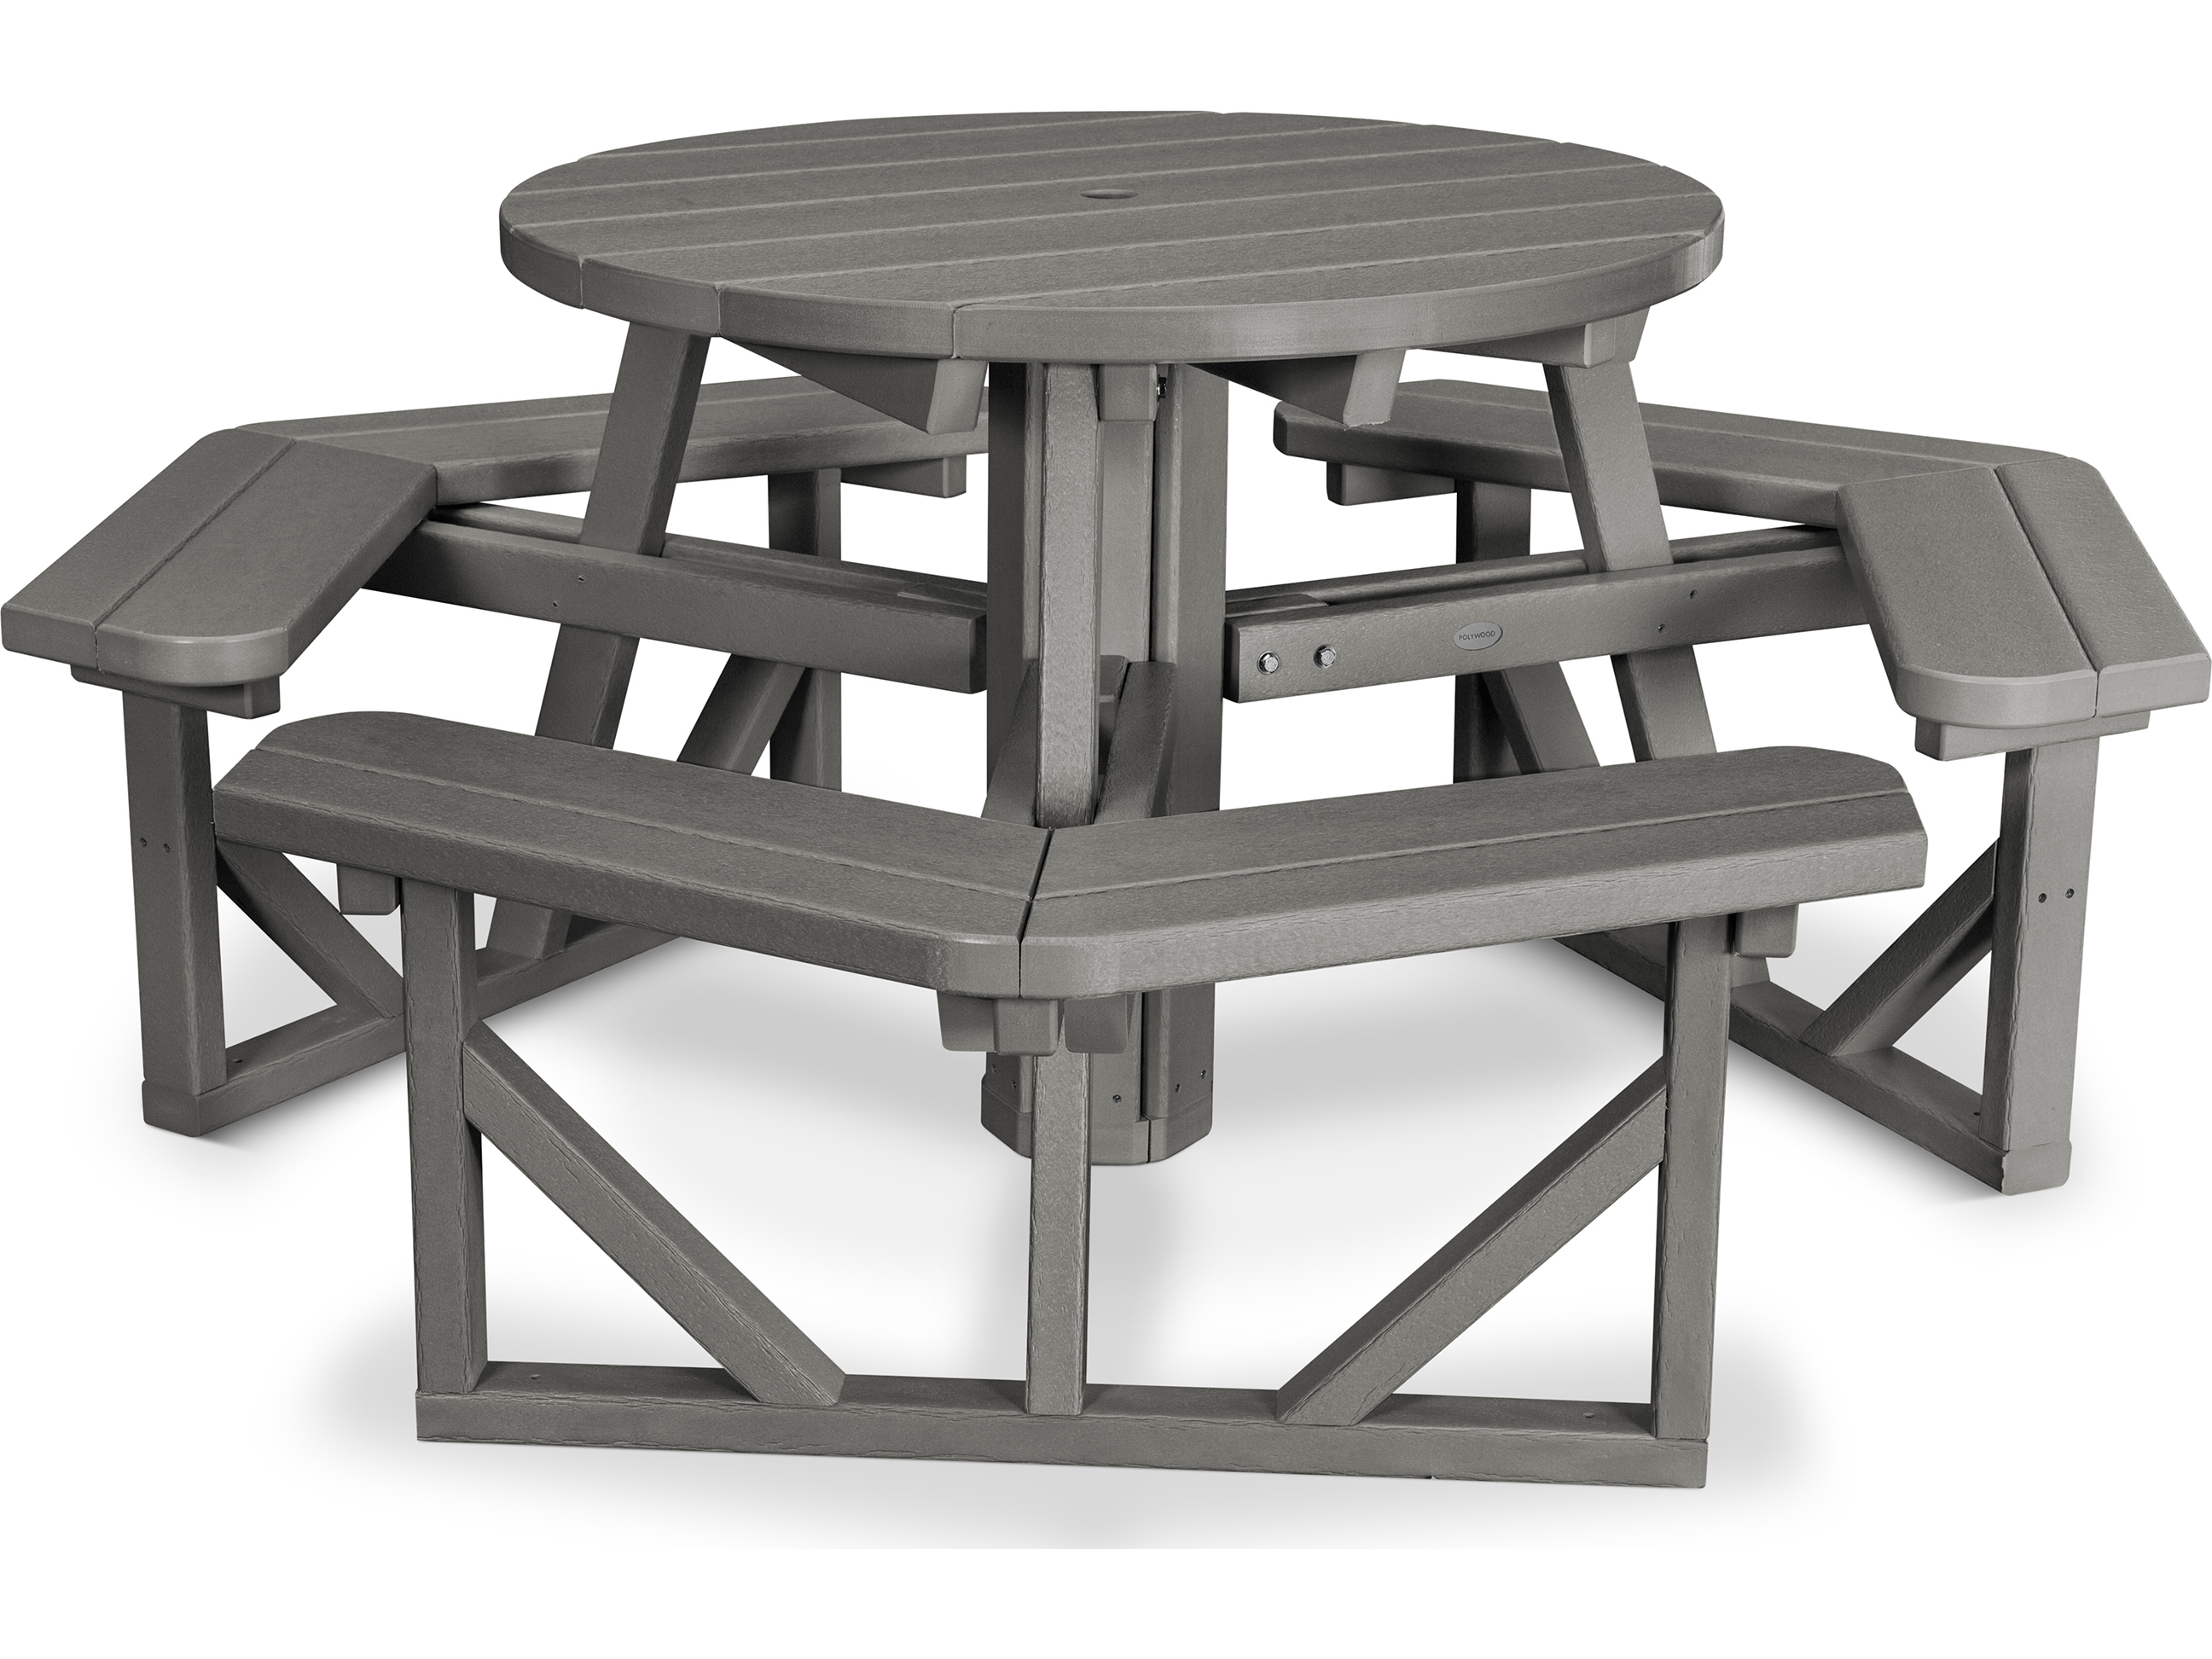 POLYWOOD Park Recycled Plastic 36 Round Picnic Table  PH36